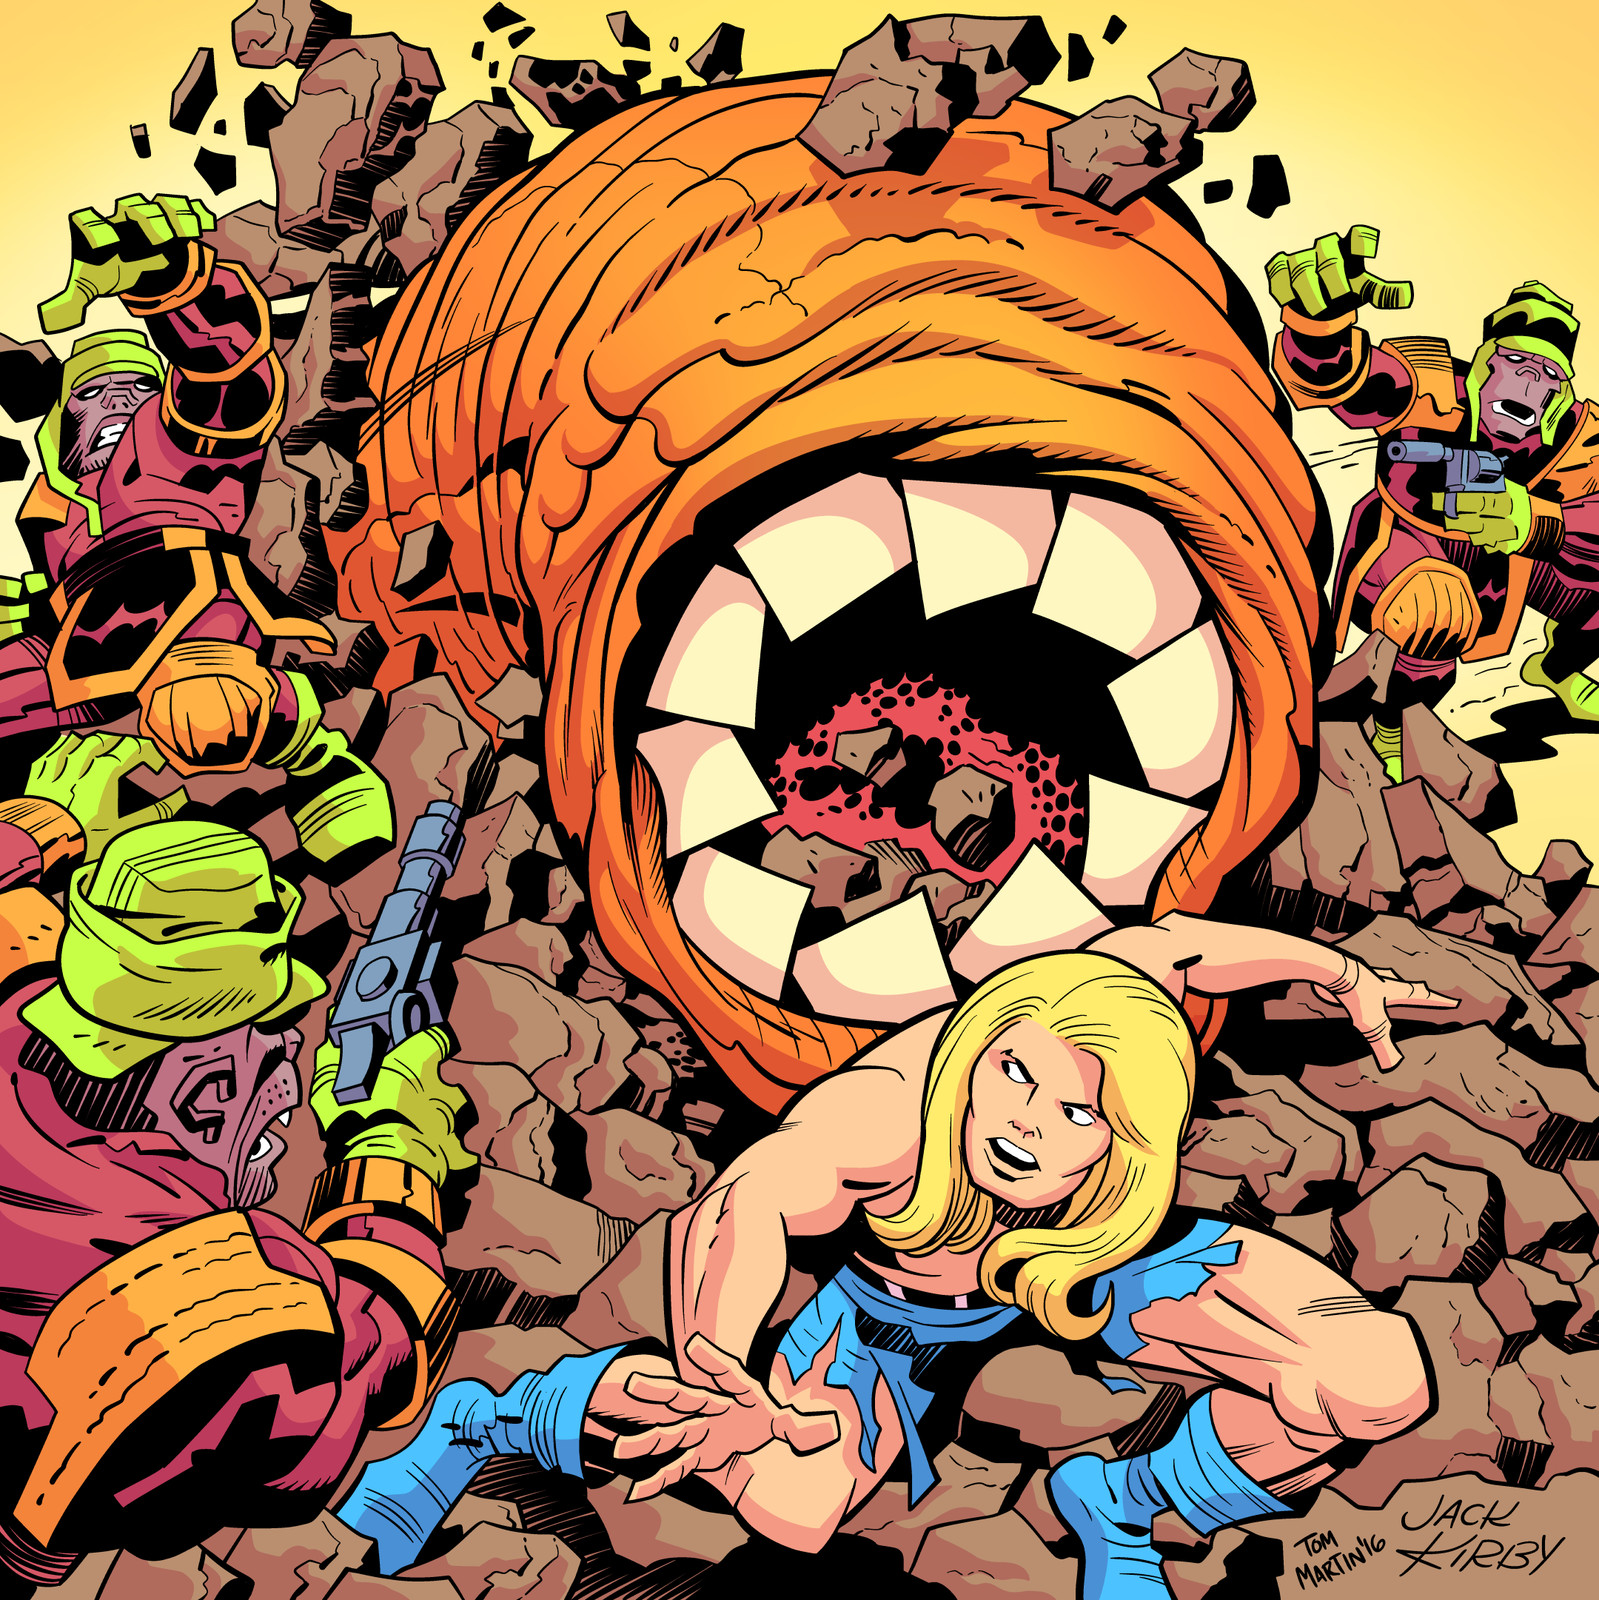 Inking & coloring Jack Kirby